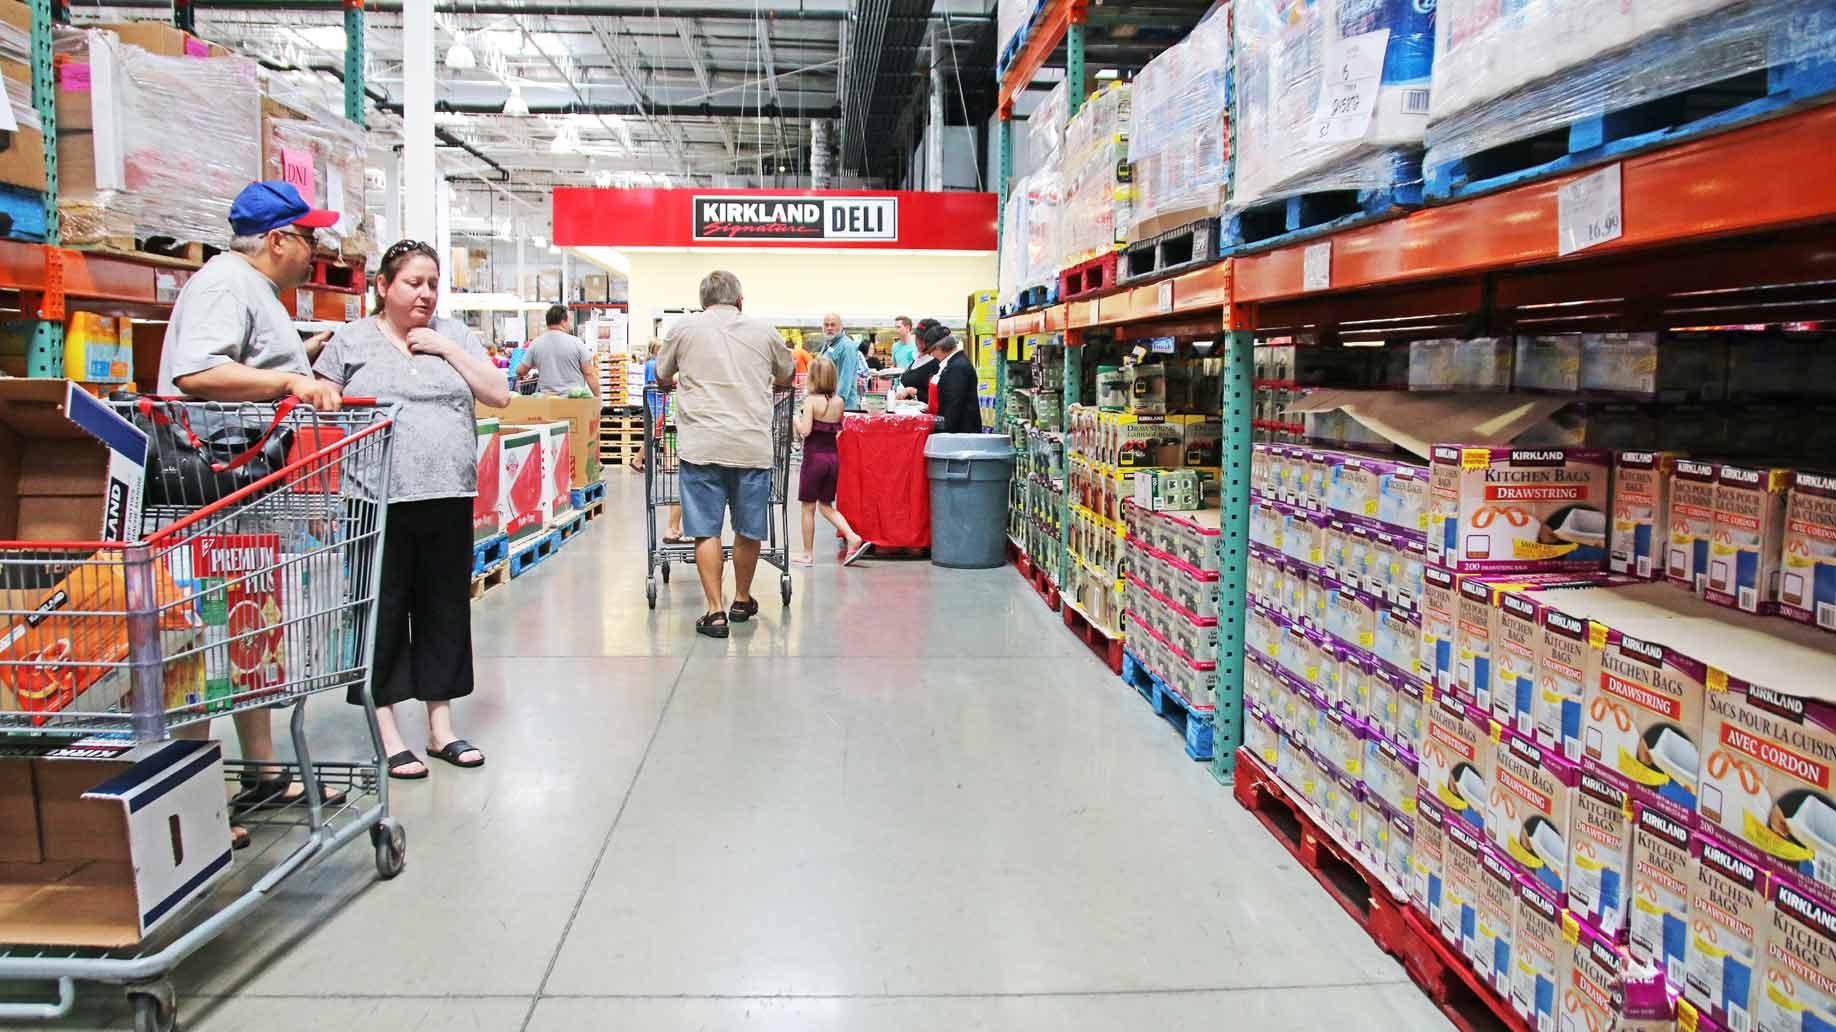 Is a warehouse store costco sams club bjs membership worth it costco interior photo by alastair wallace altavistaventures Images